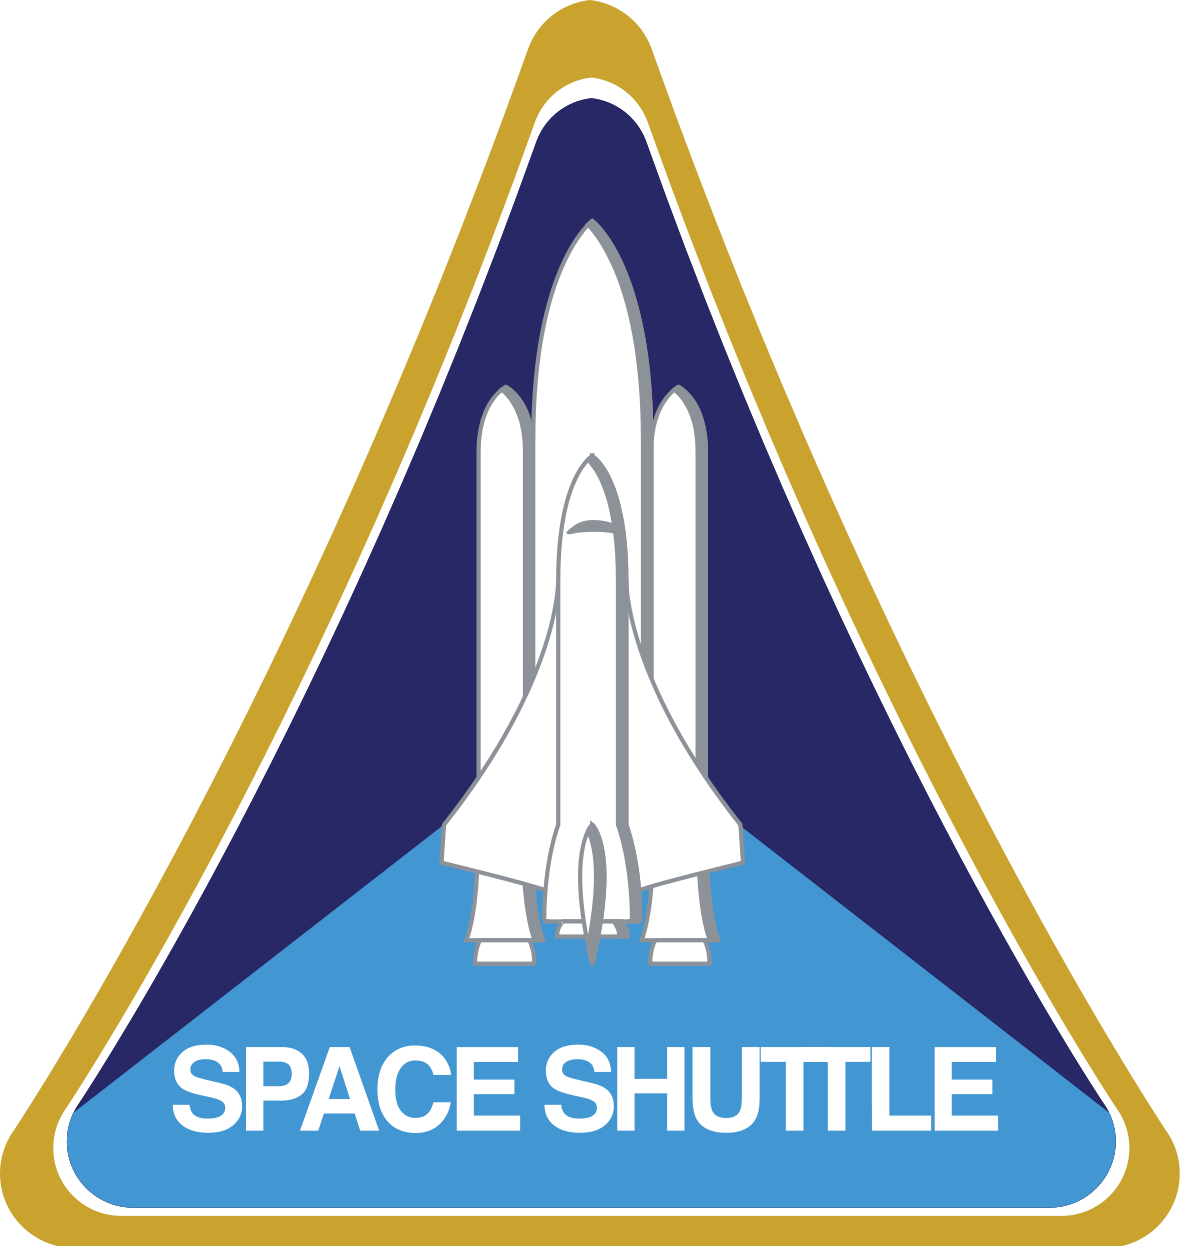 Shuttle program wikipedia . Clipart rocket space transportation